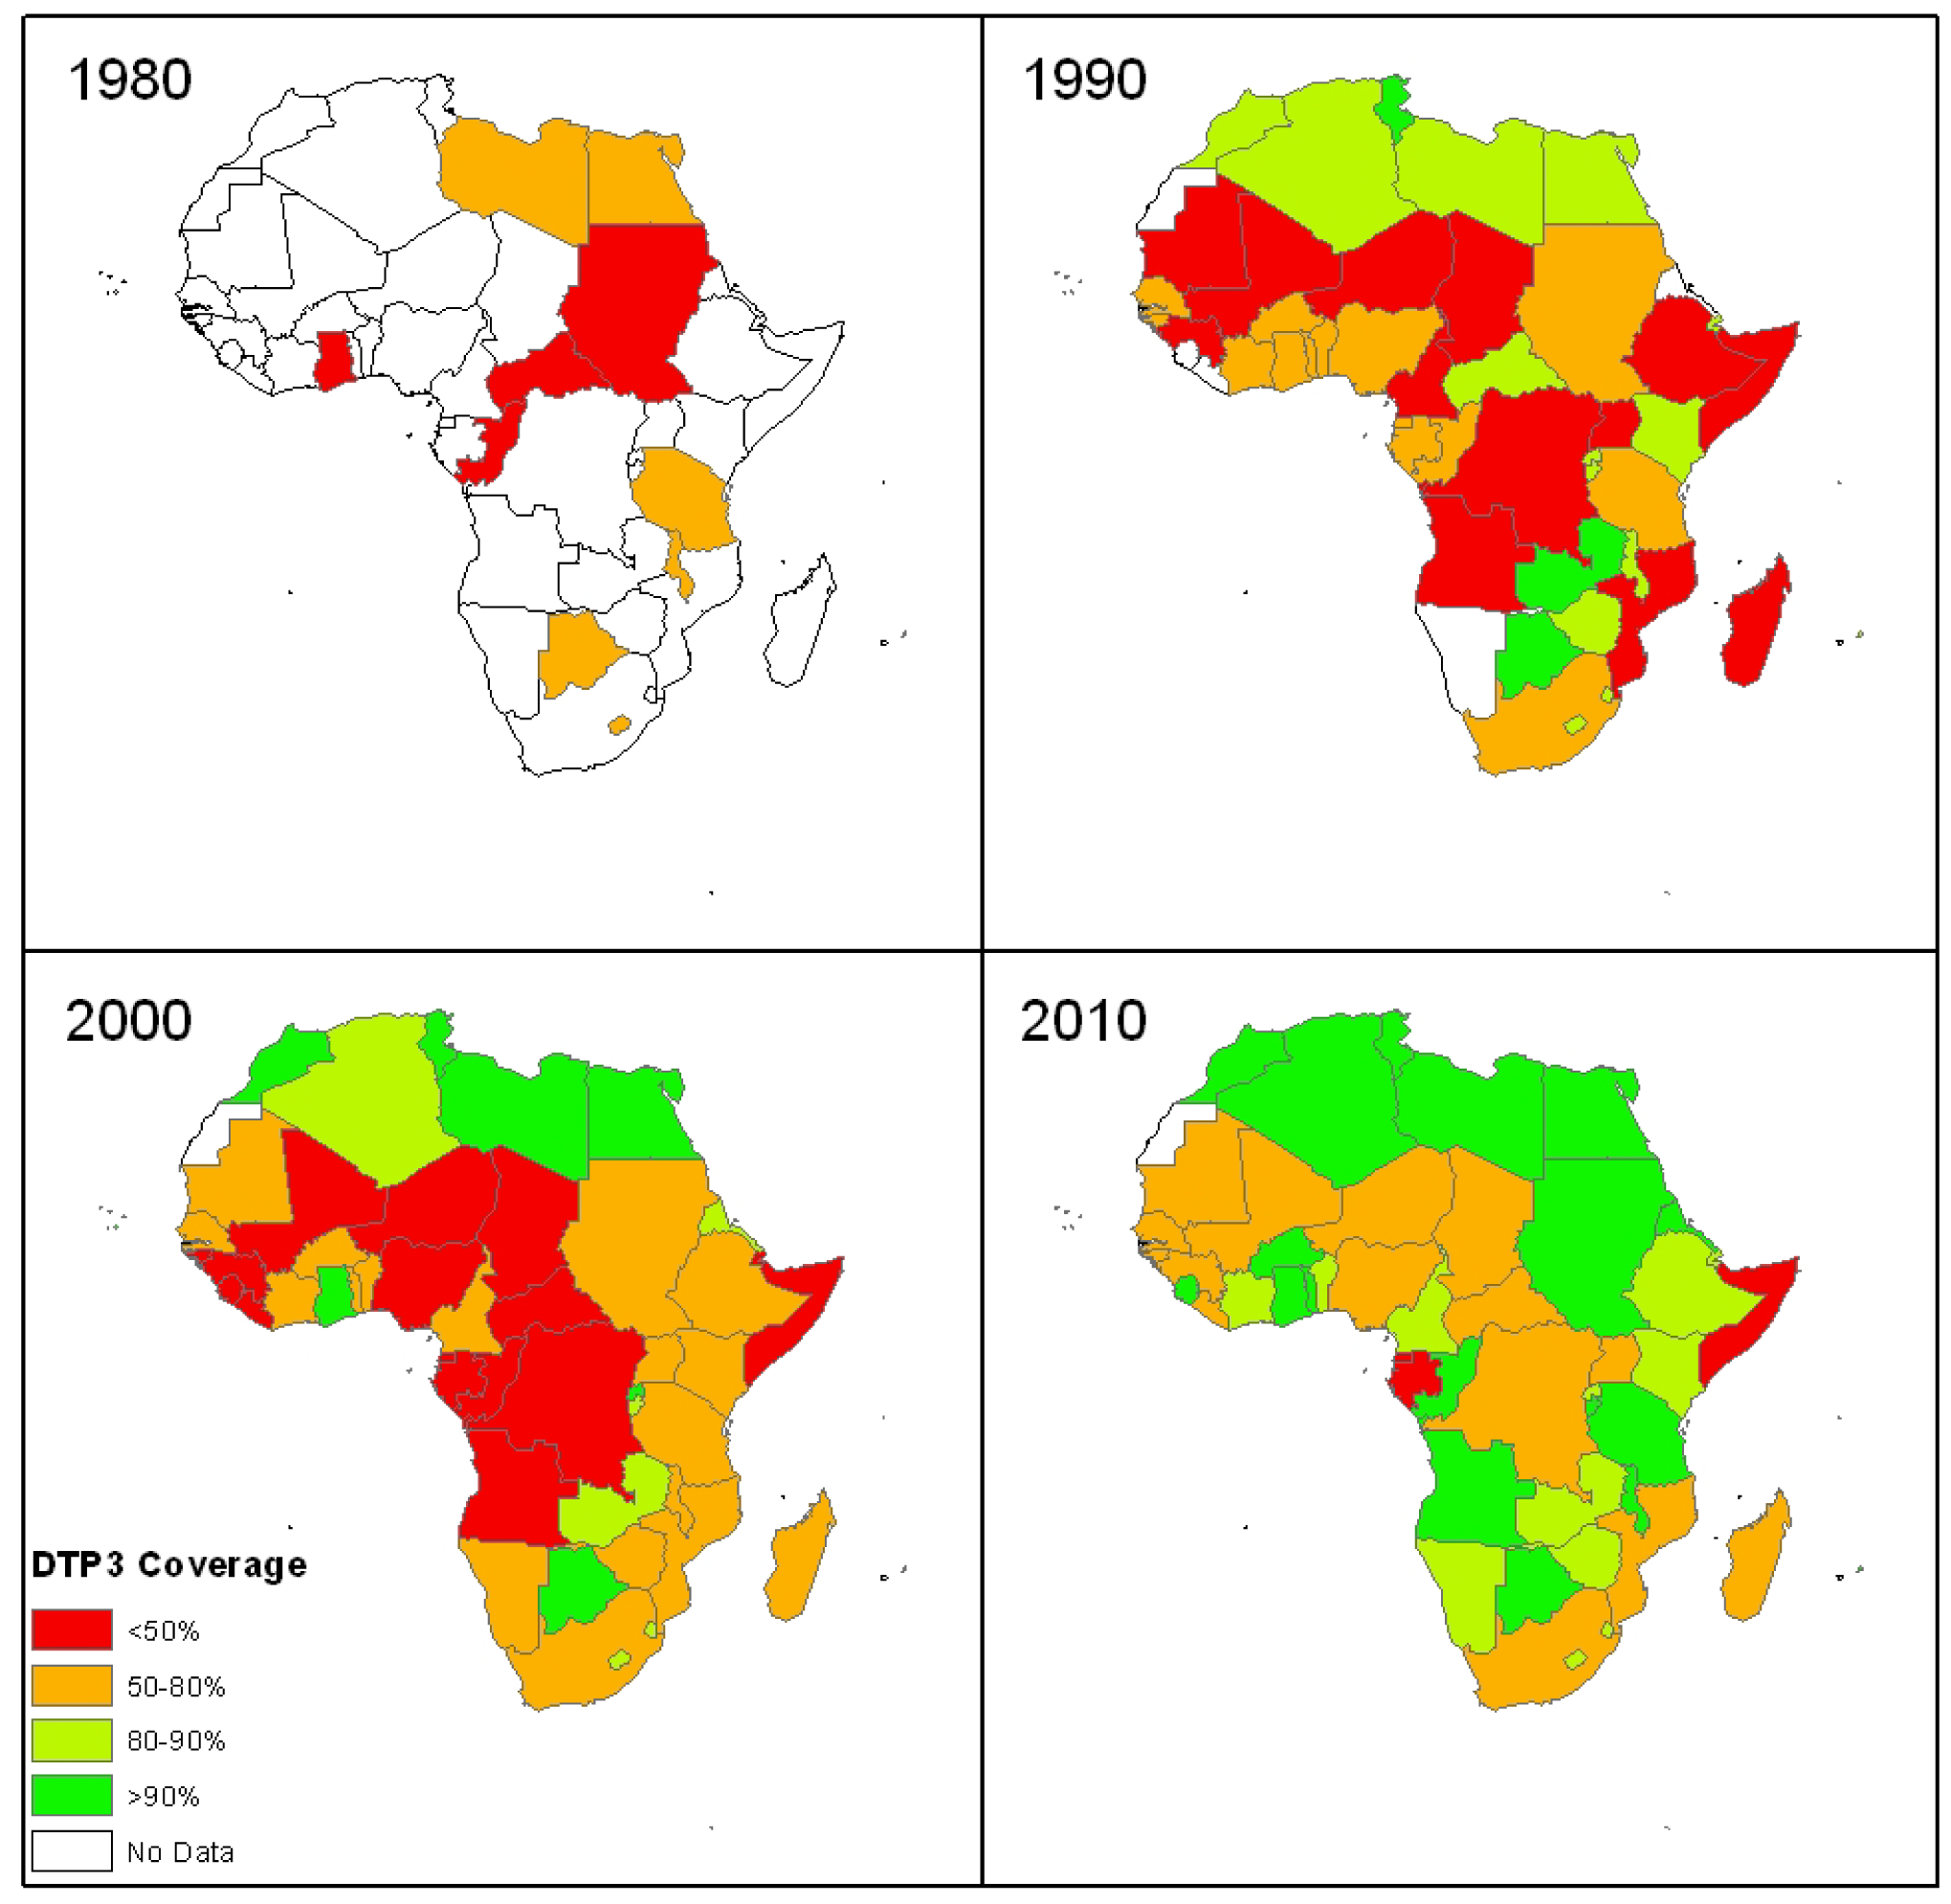 Colour-coded maps of Africa showing national coverage with the third dose of the diphtheria-tetanus-pertussis vaccine (DTP3) at the end of each decade since 1974.